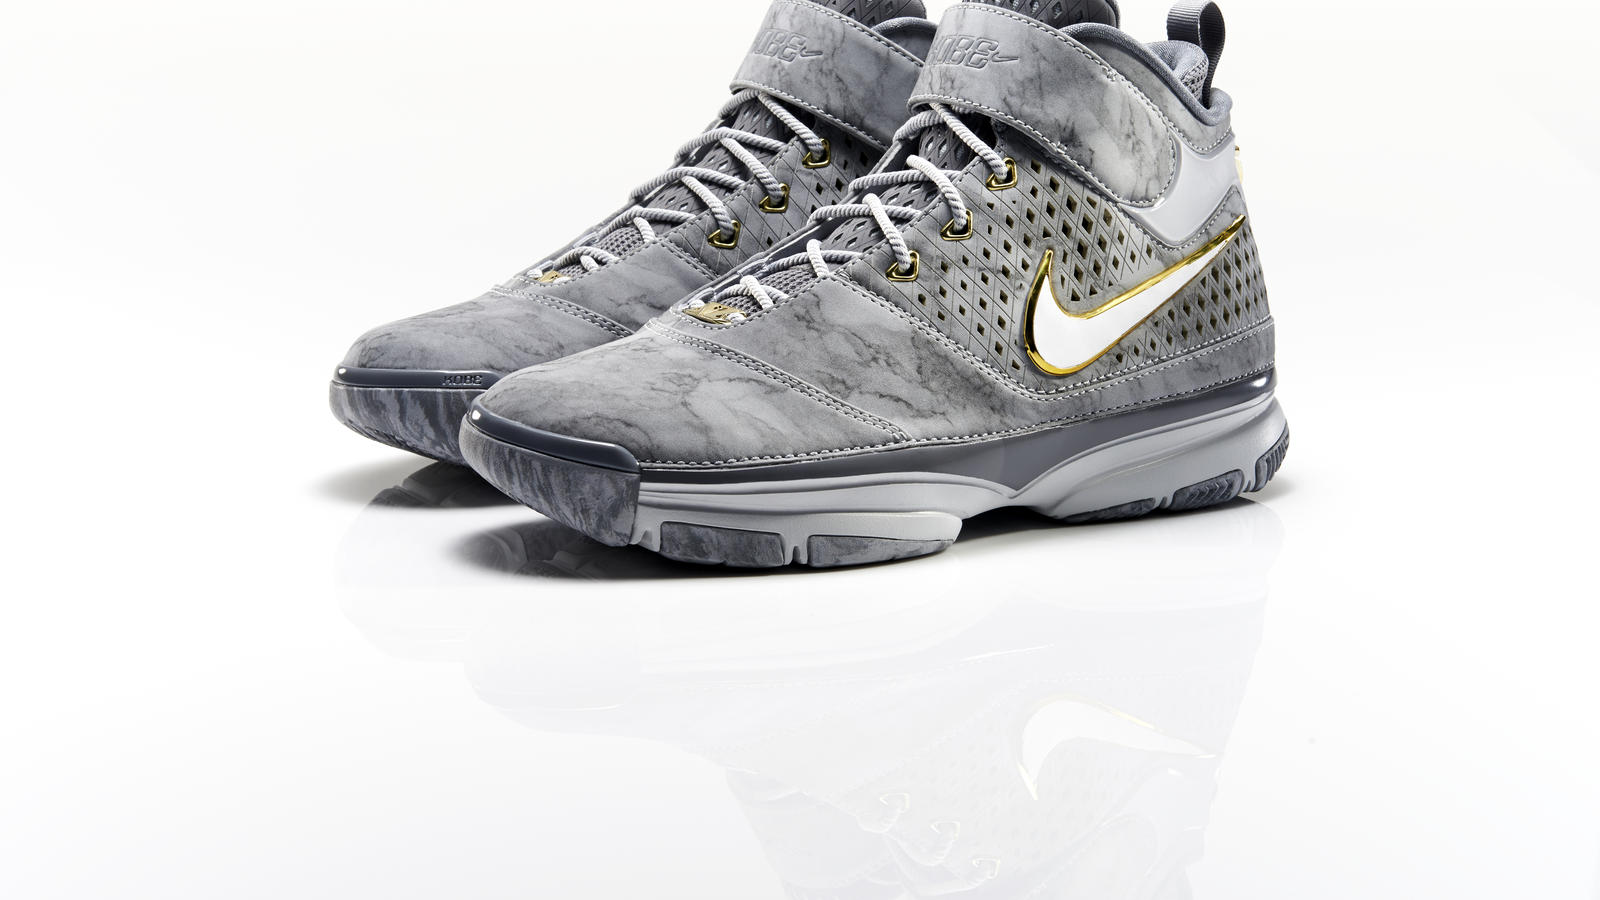 new styles e0f16 8595e ... Pack Introducing the Kobe Prelude II - Nike News ...